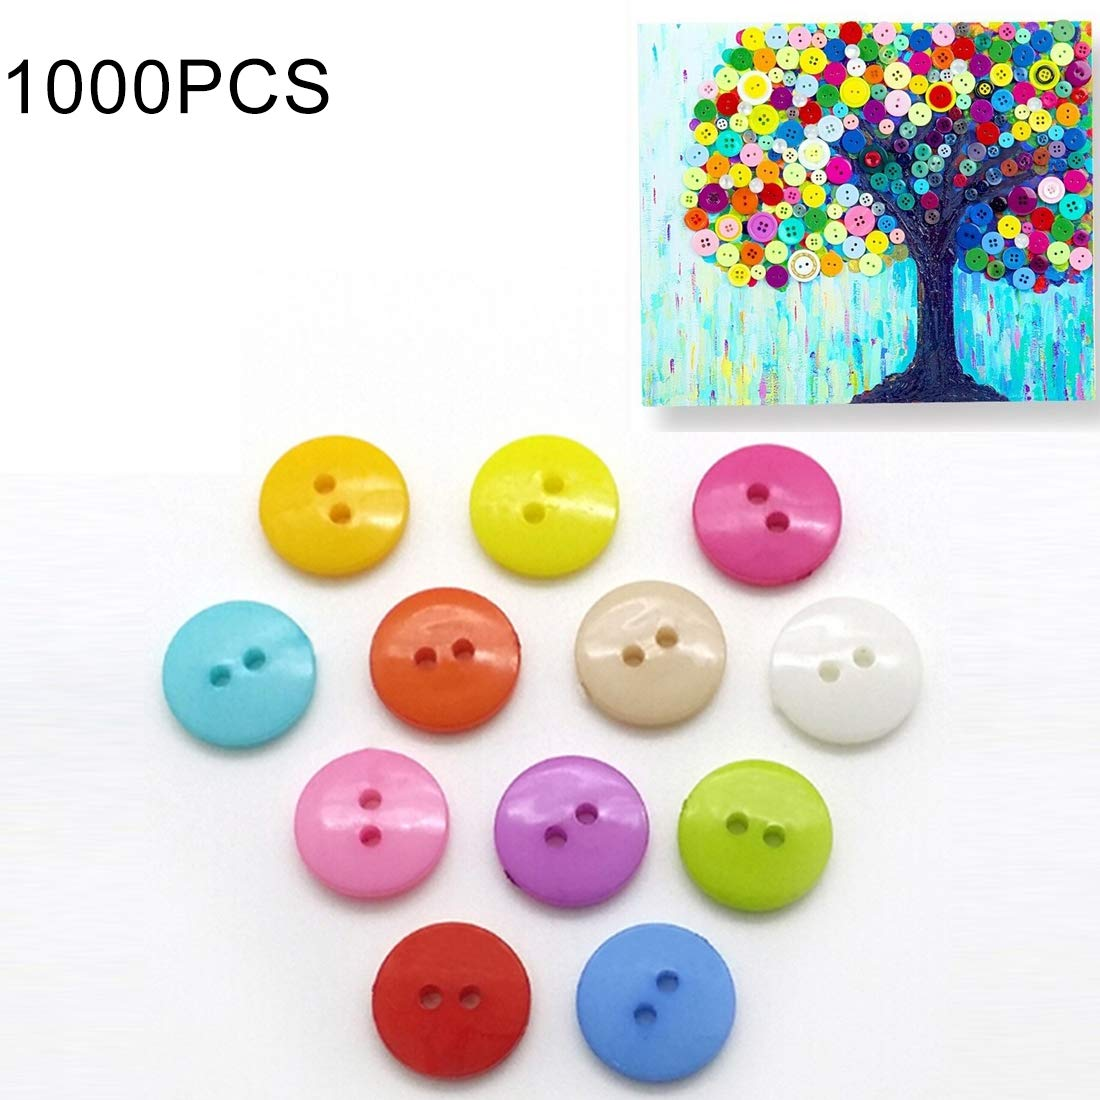 Tangyongjiao Home Decorative Supplies 1000 PCS Assorted Mixed Color 2 Holes Buttons for Sewing DIY Crafts Children Manual Button Painting, Random Color, Diameter: 10mm by Tangyongjiao